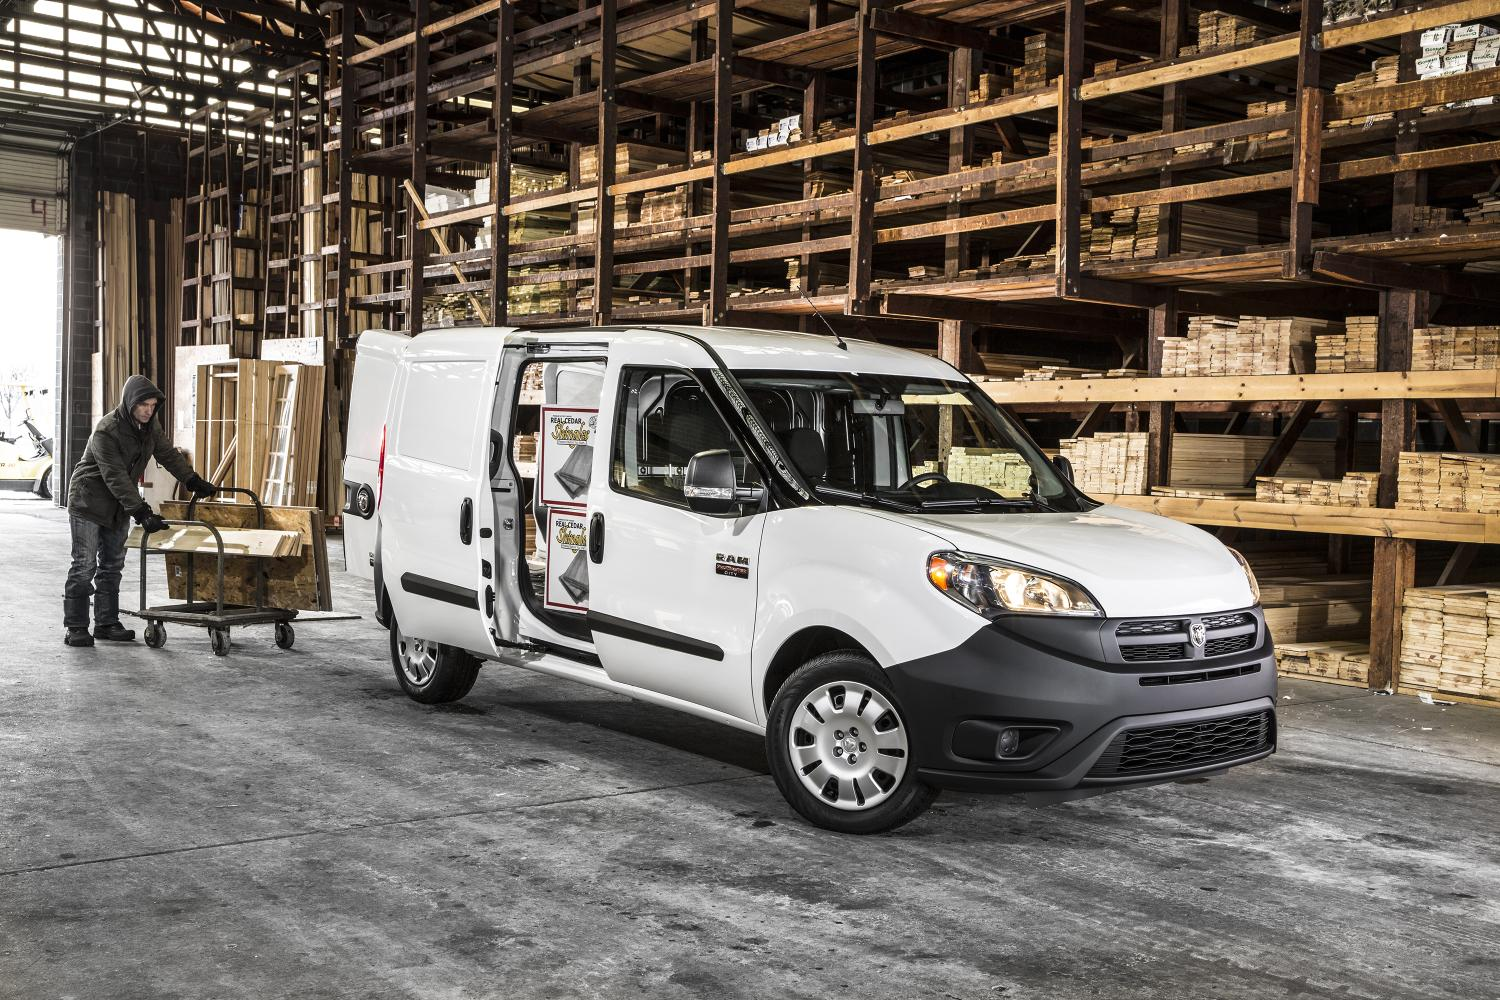 2015 ram promaster city priced from 23 130 autoevolution. Black Bedroom Furniture Sets. Home Design Ideas